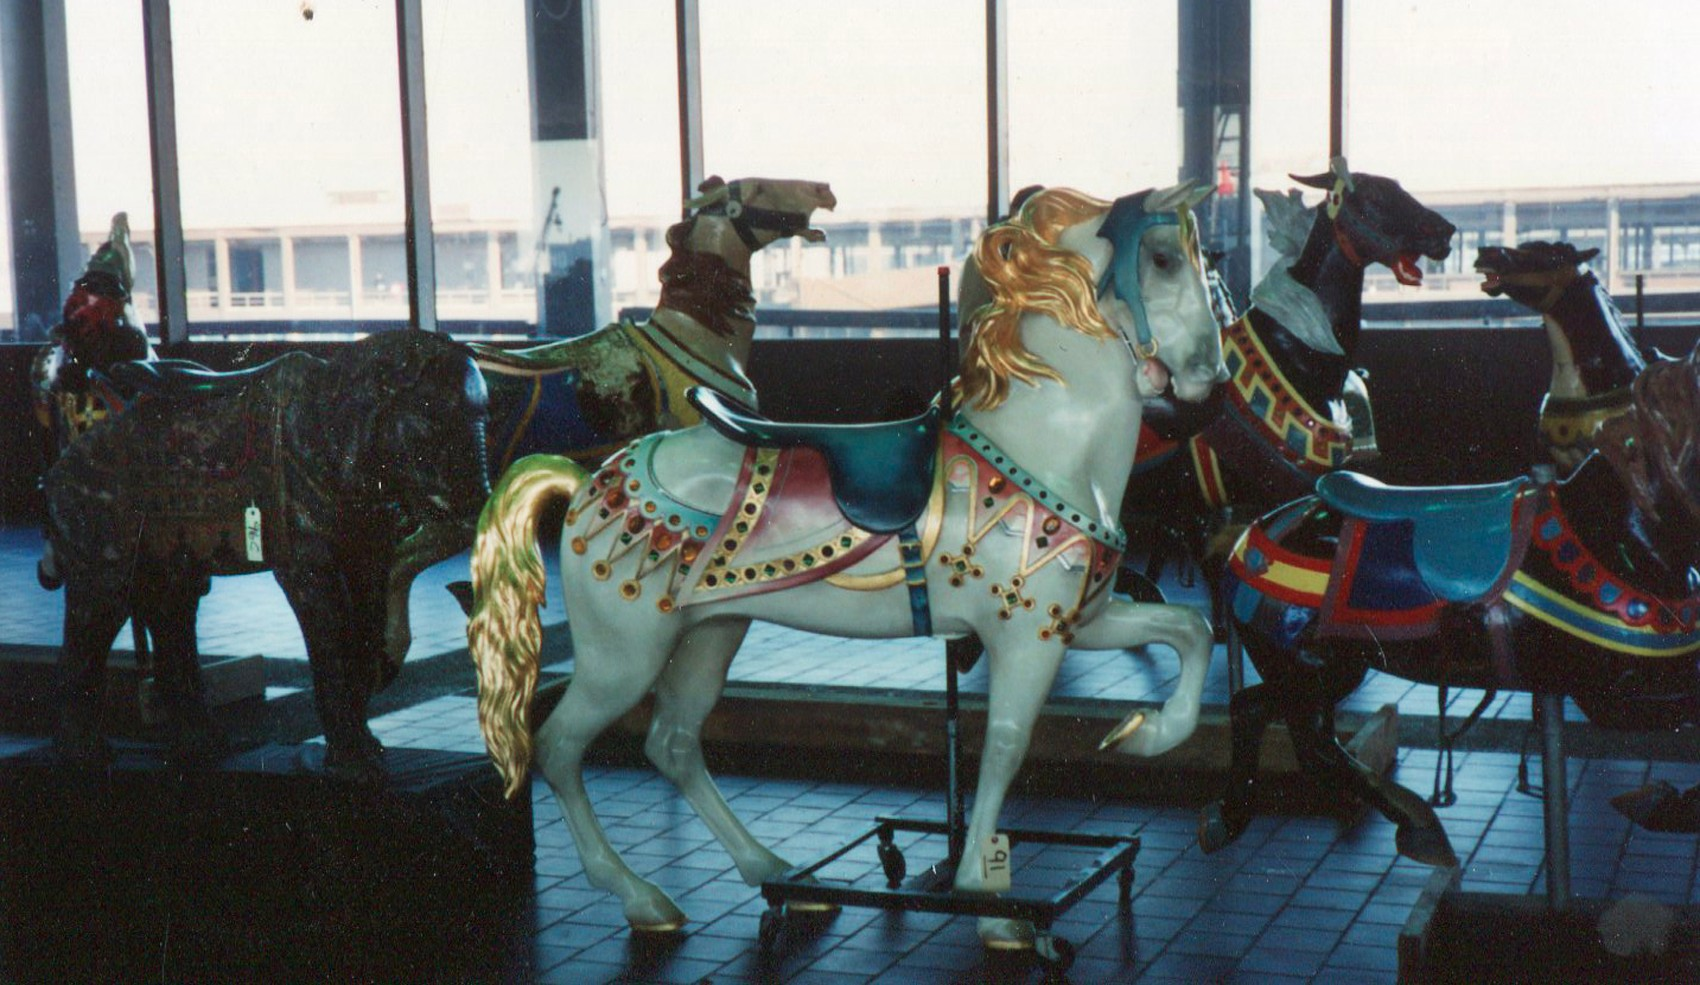 Illions-antique-carousel-horse-Guernsey-auction-89-011